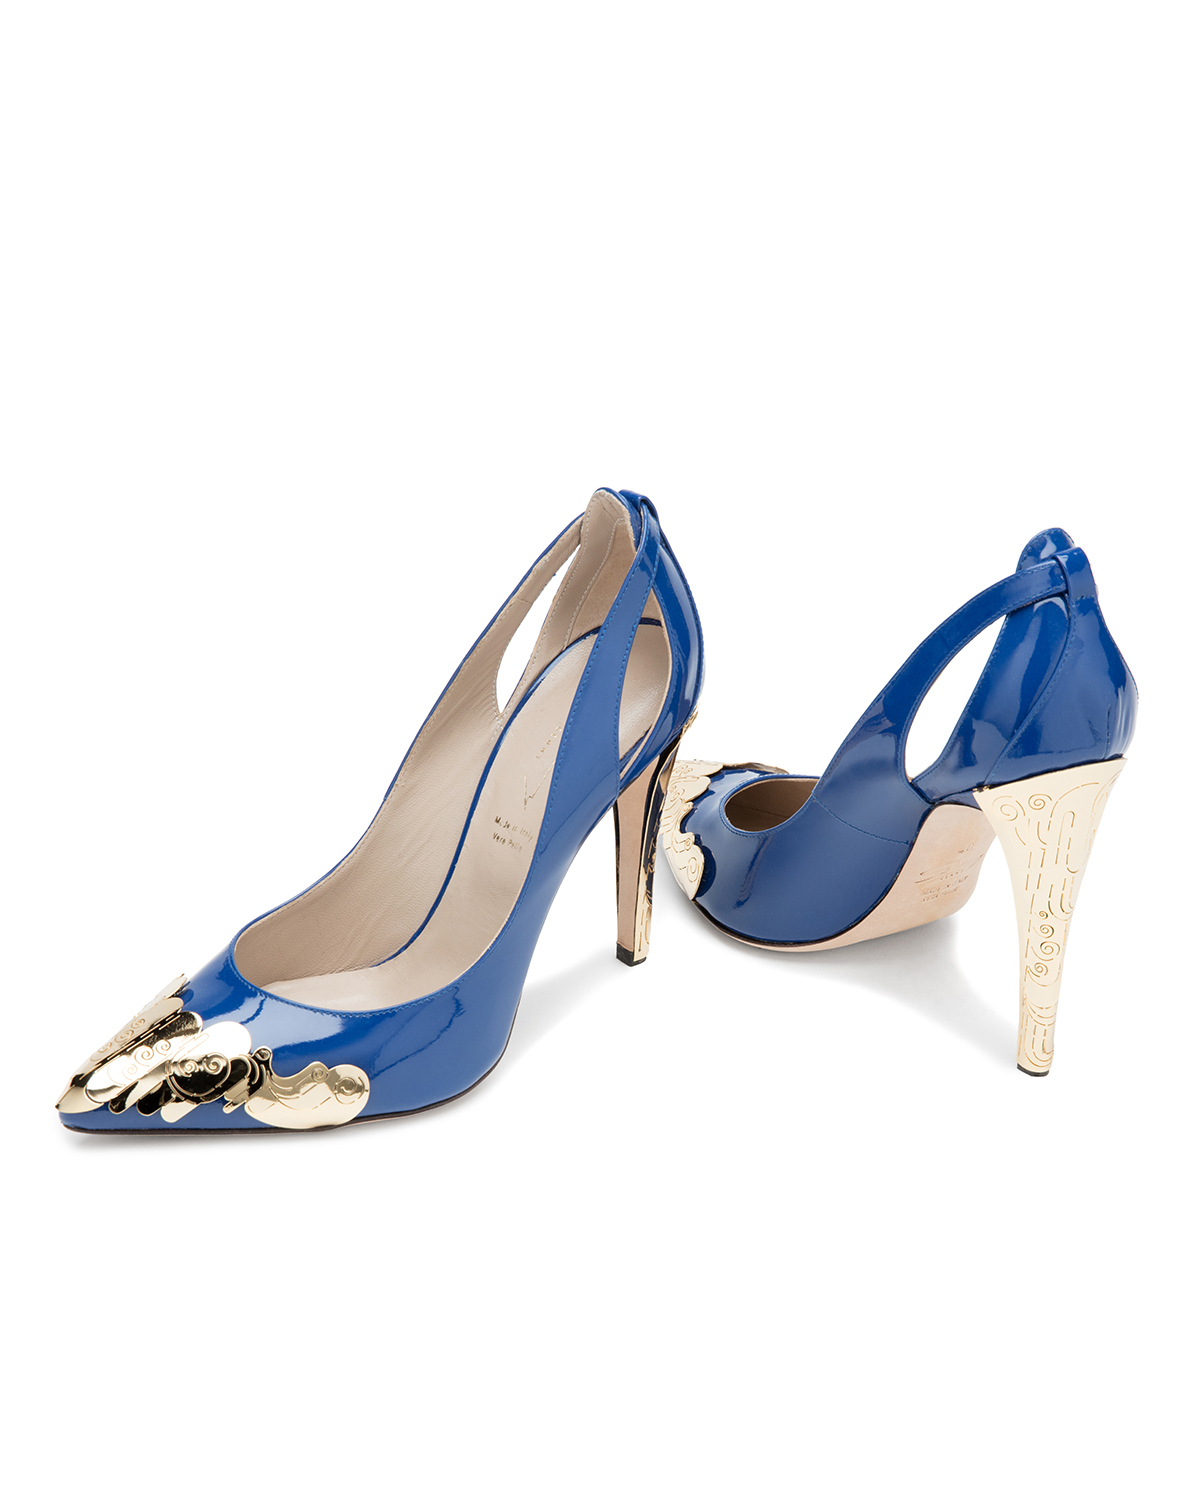 Blue patent-leather pumps with decorated heel